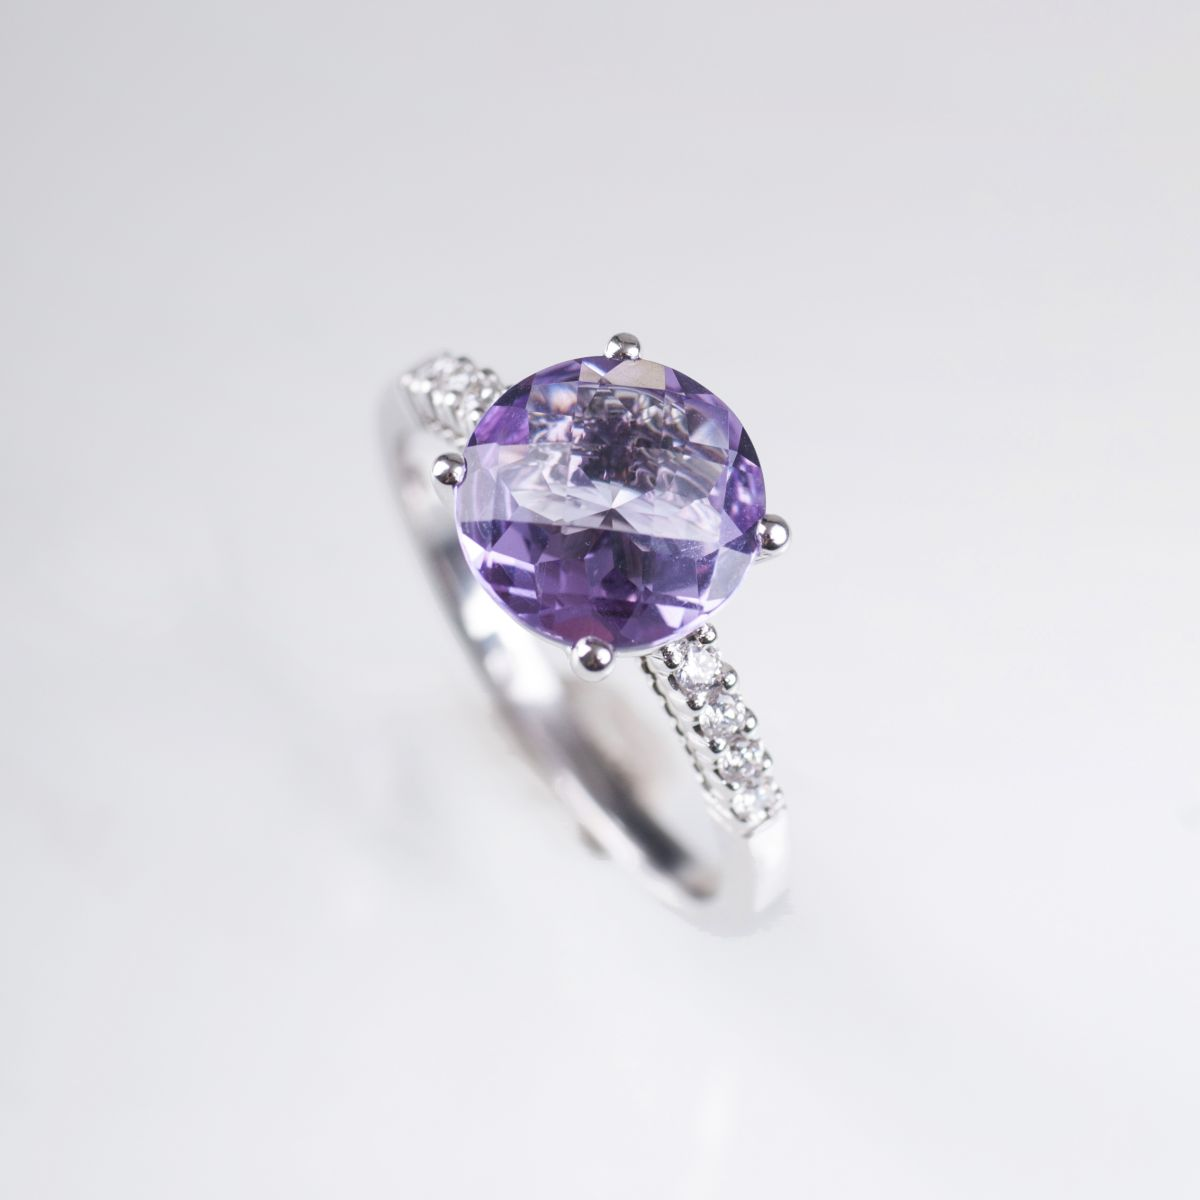 An amethyst diamond ring